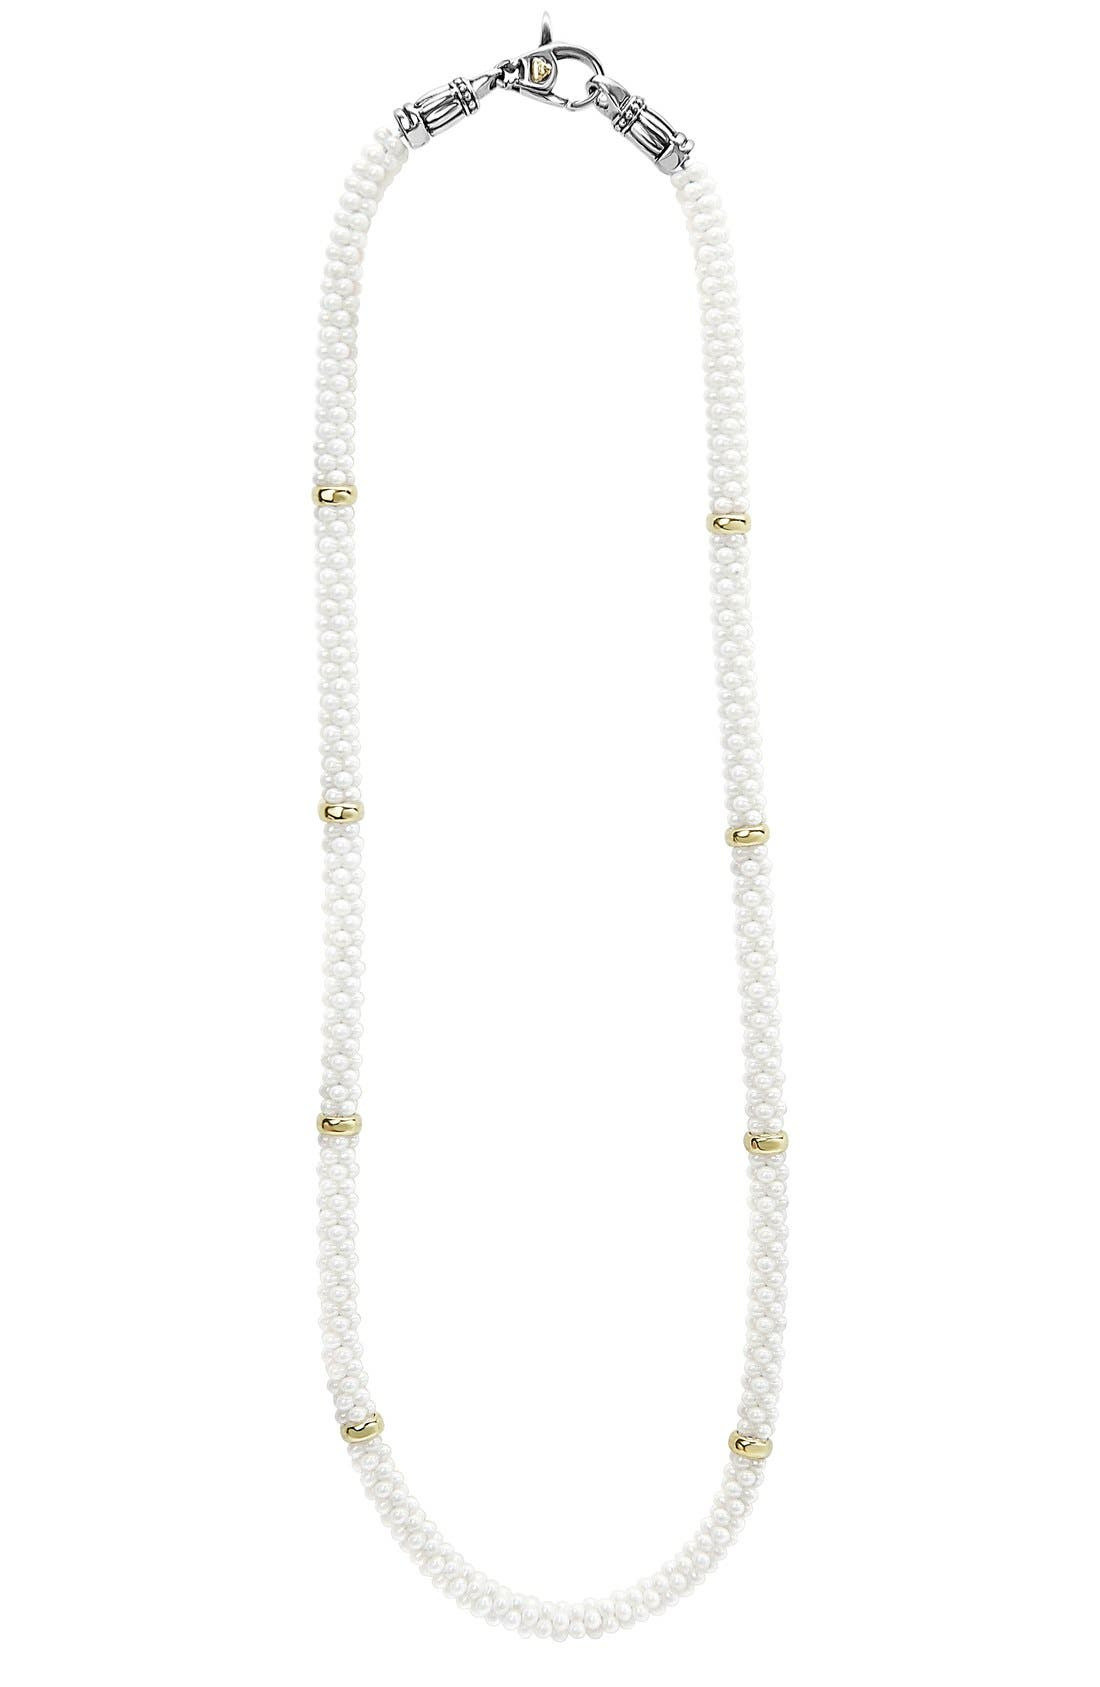 Alternate Image 1 Selected - LAGOS 'White Caviar' 5mm Beaded Station Necklace